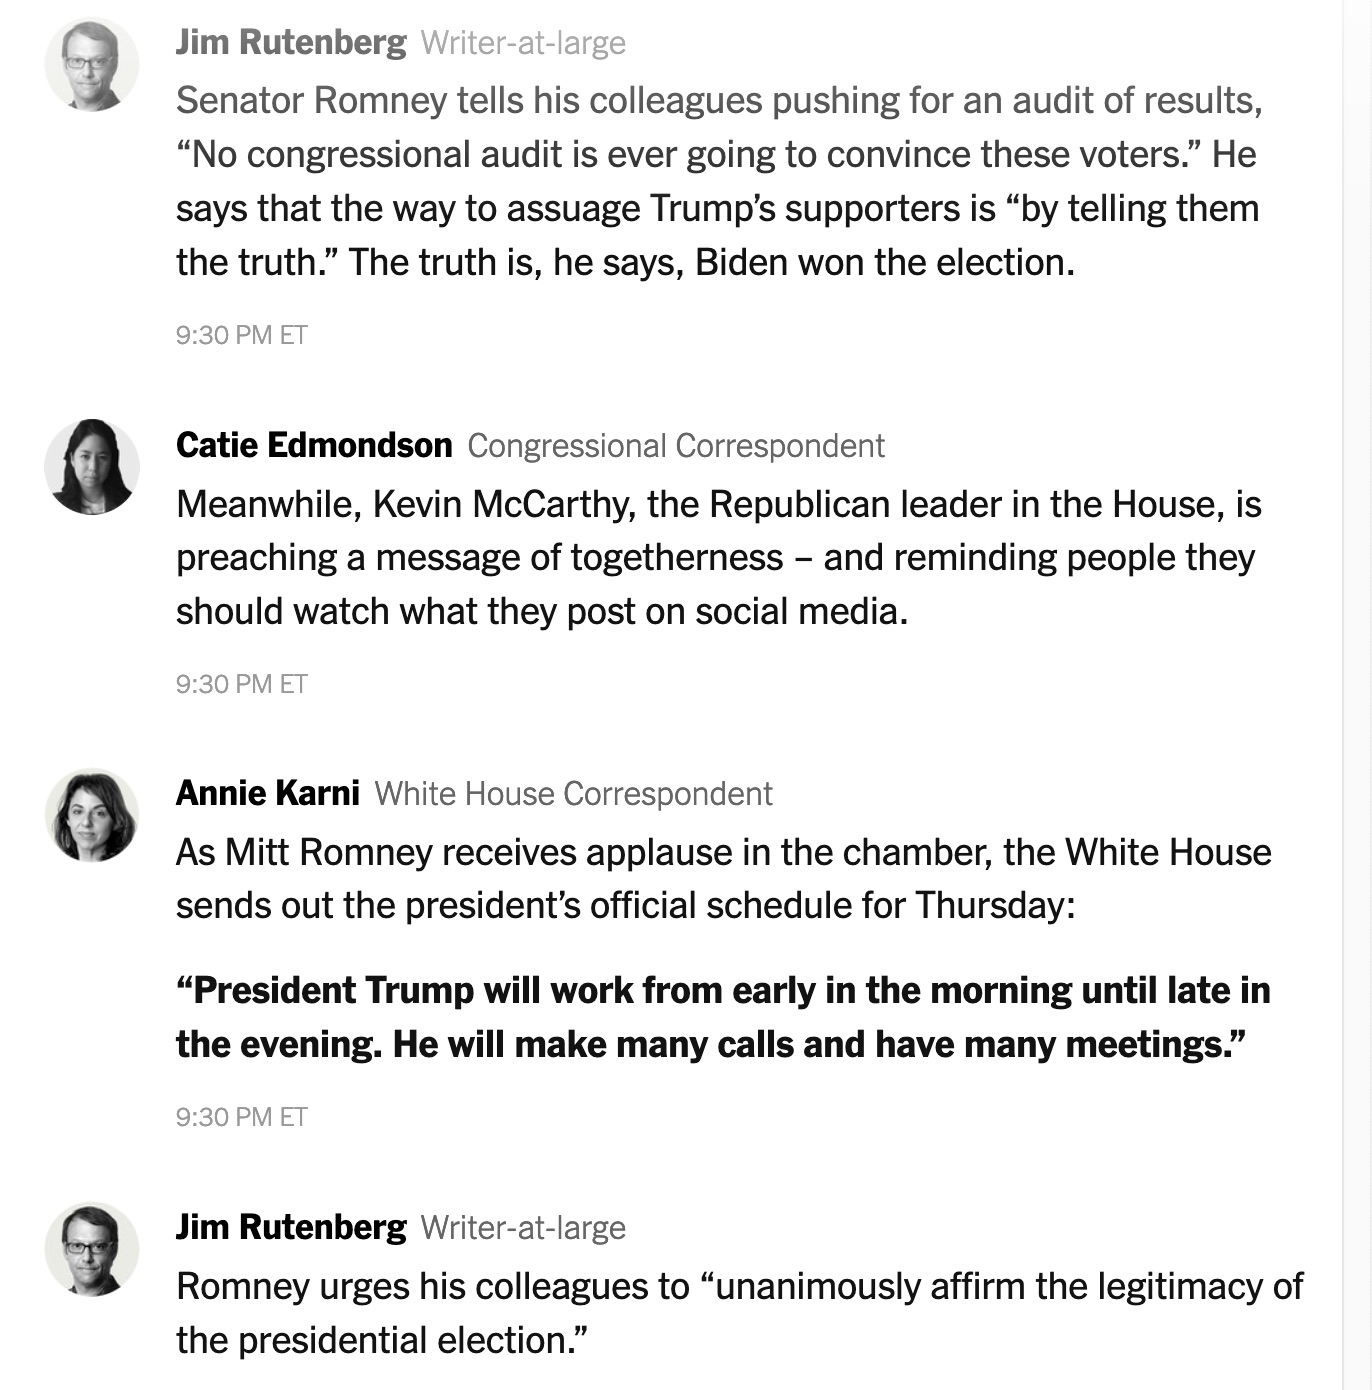 clips from nyt commentary on live coverage in senate.jpg